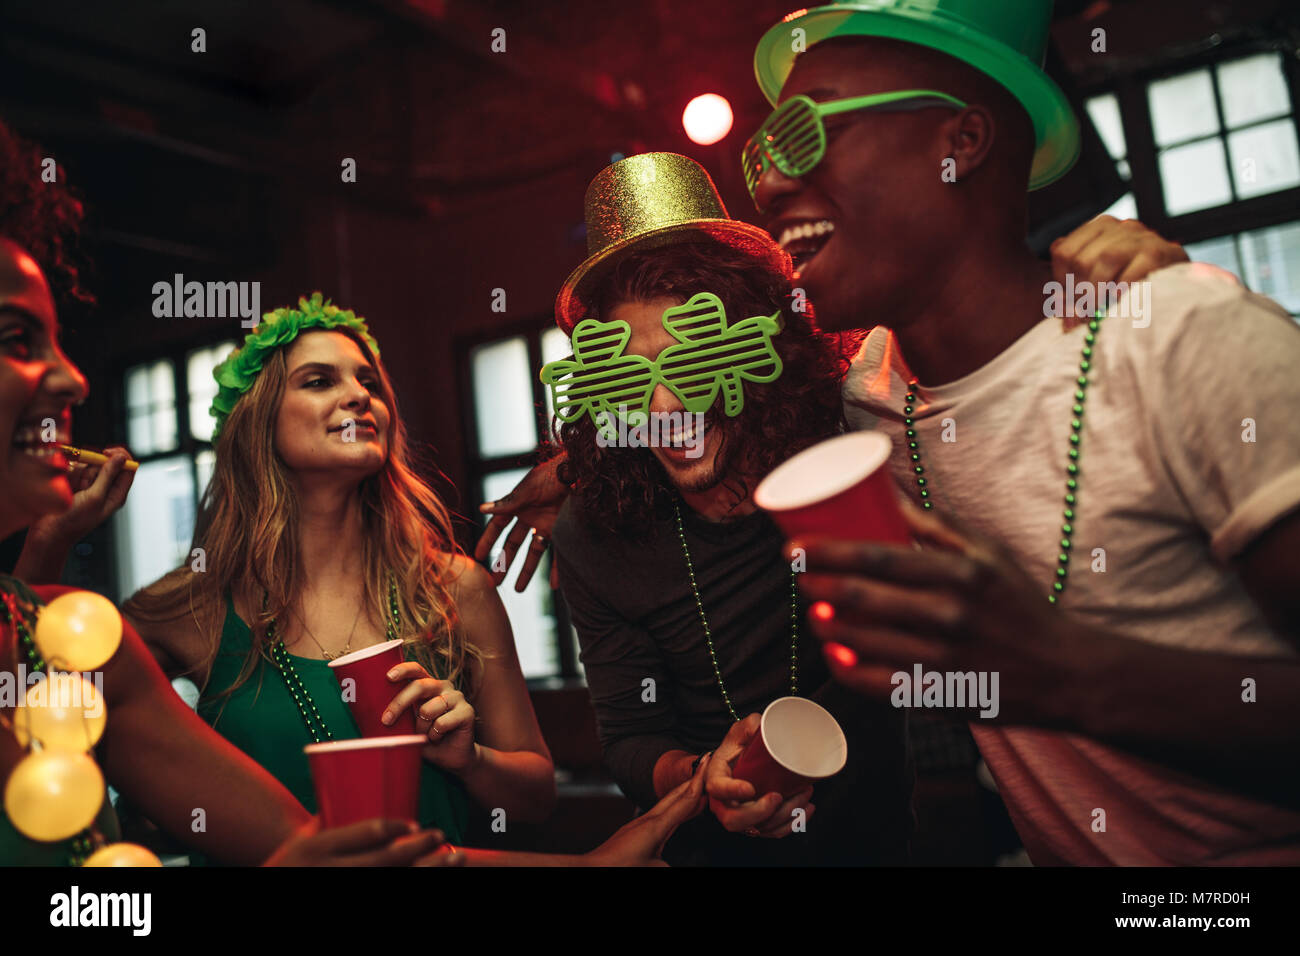 Group of young men and woman celebrating St. Patrick's Day. Friends having fun at the bar with green party glasses - Stock Image